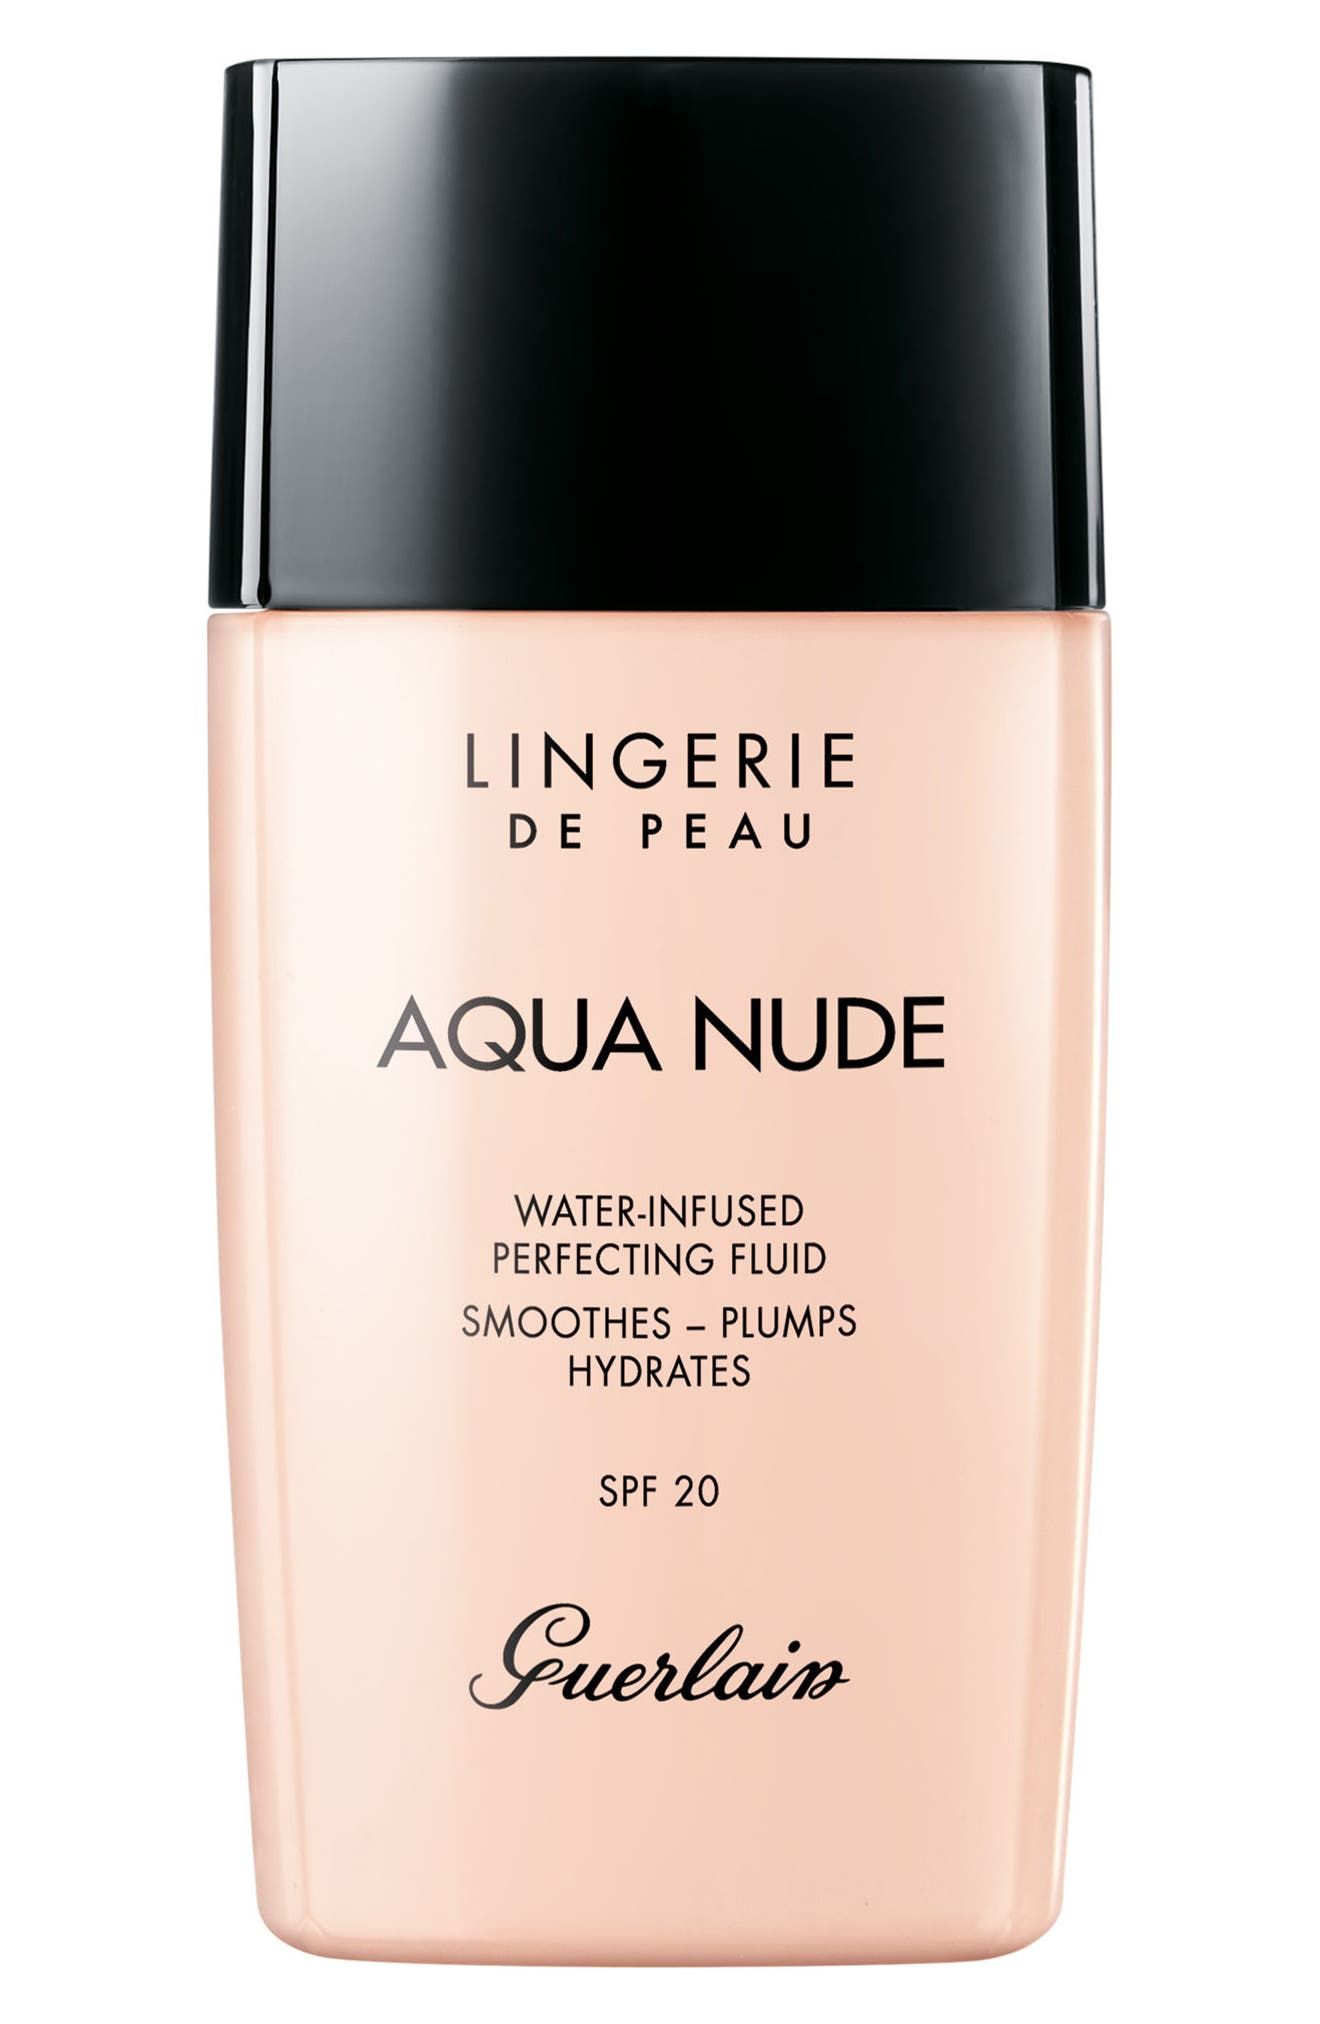 Alternate Image 1 Selected - Guerlain Lingerie de Peau Aqua Nude Foundation